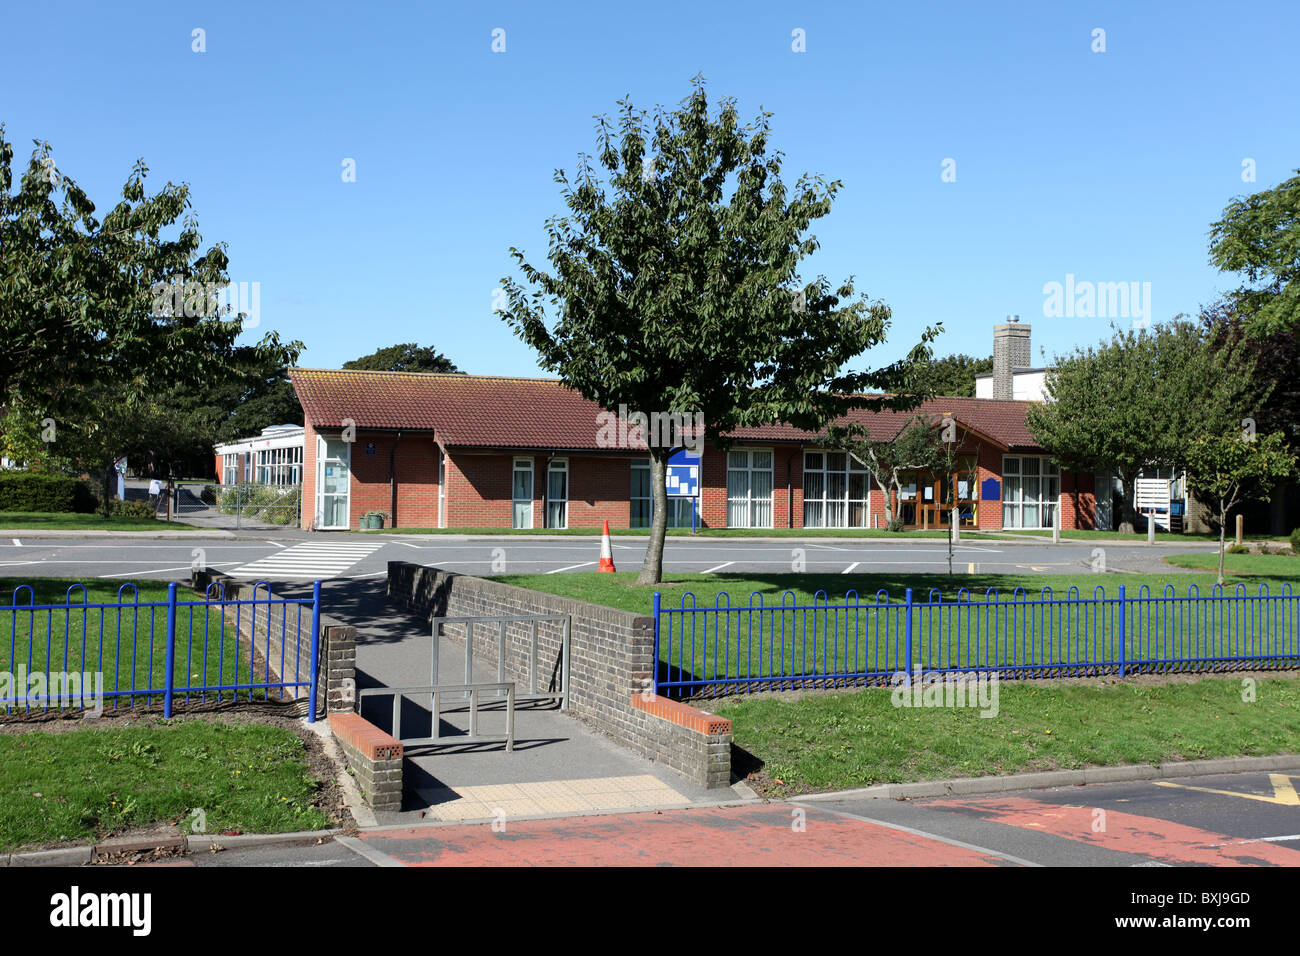 UK Primary School building exterior, for children aged 5 to 10 - Stock Image